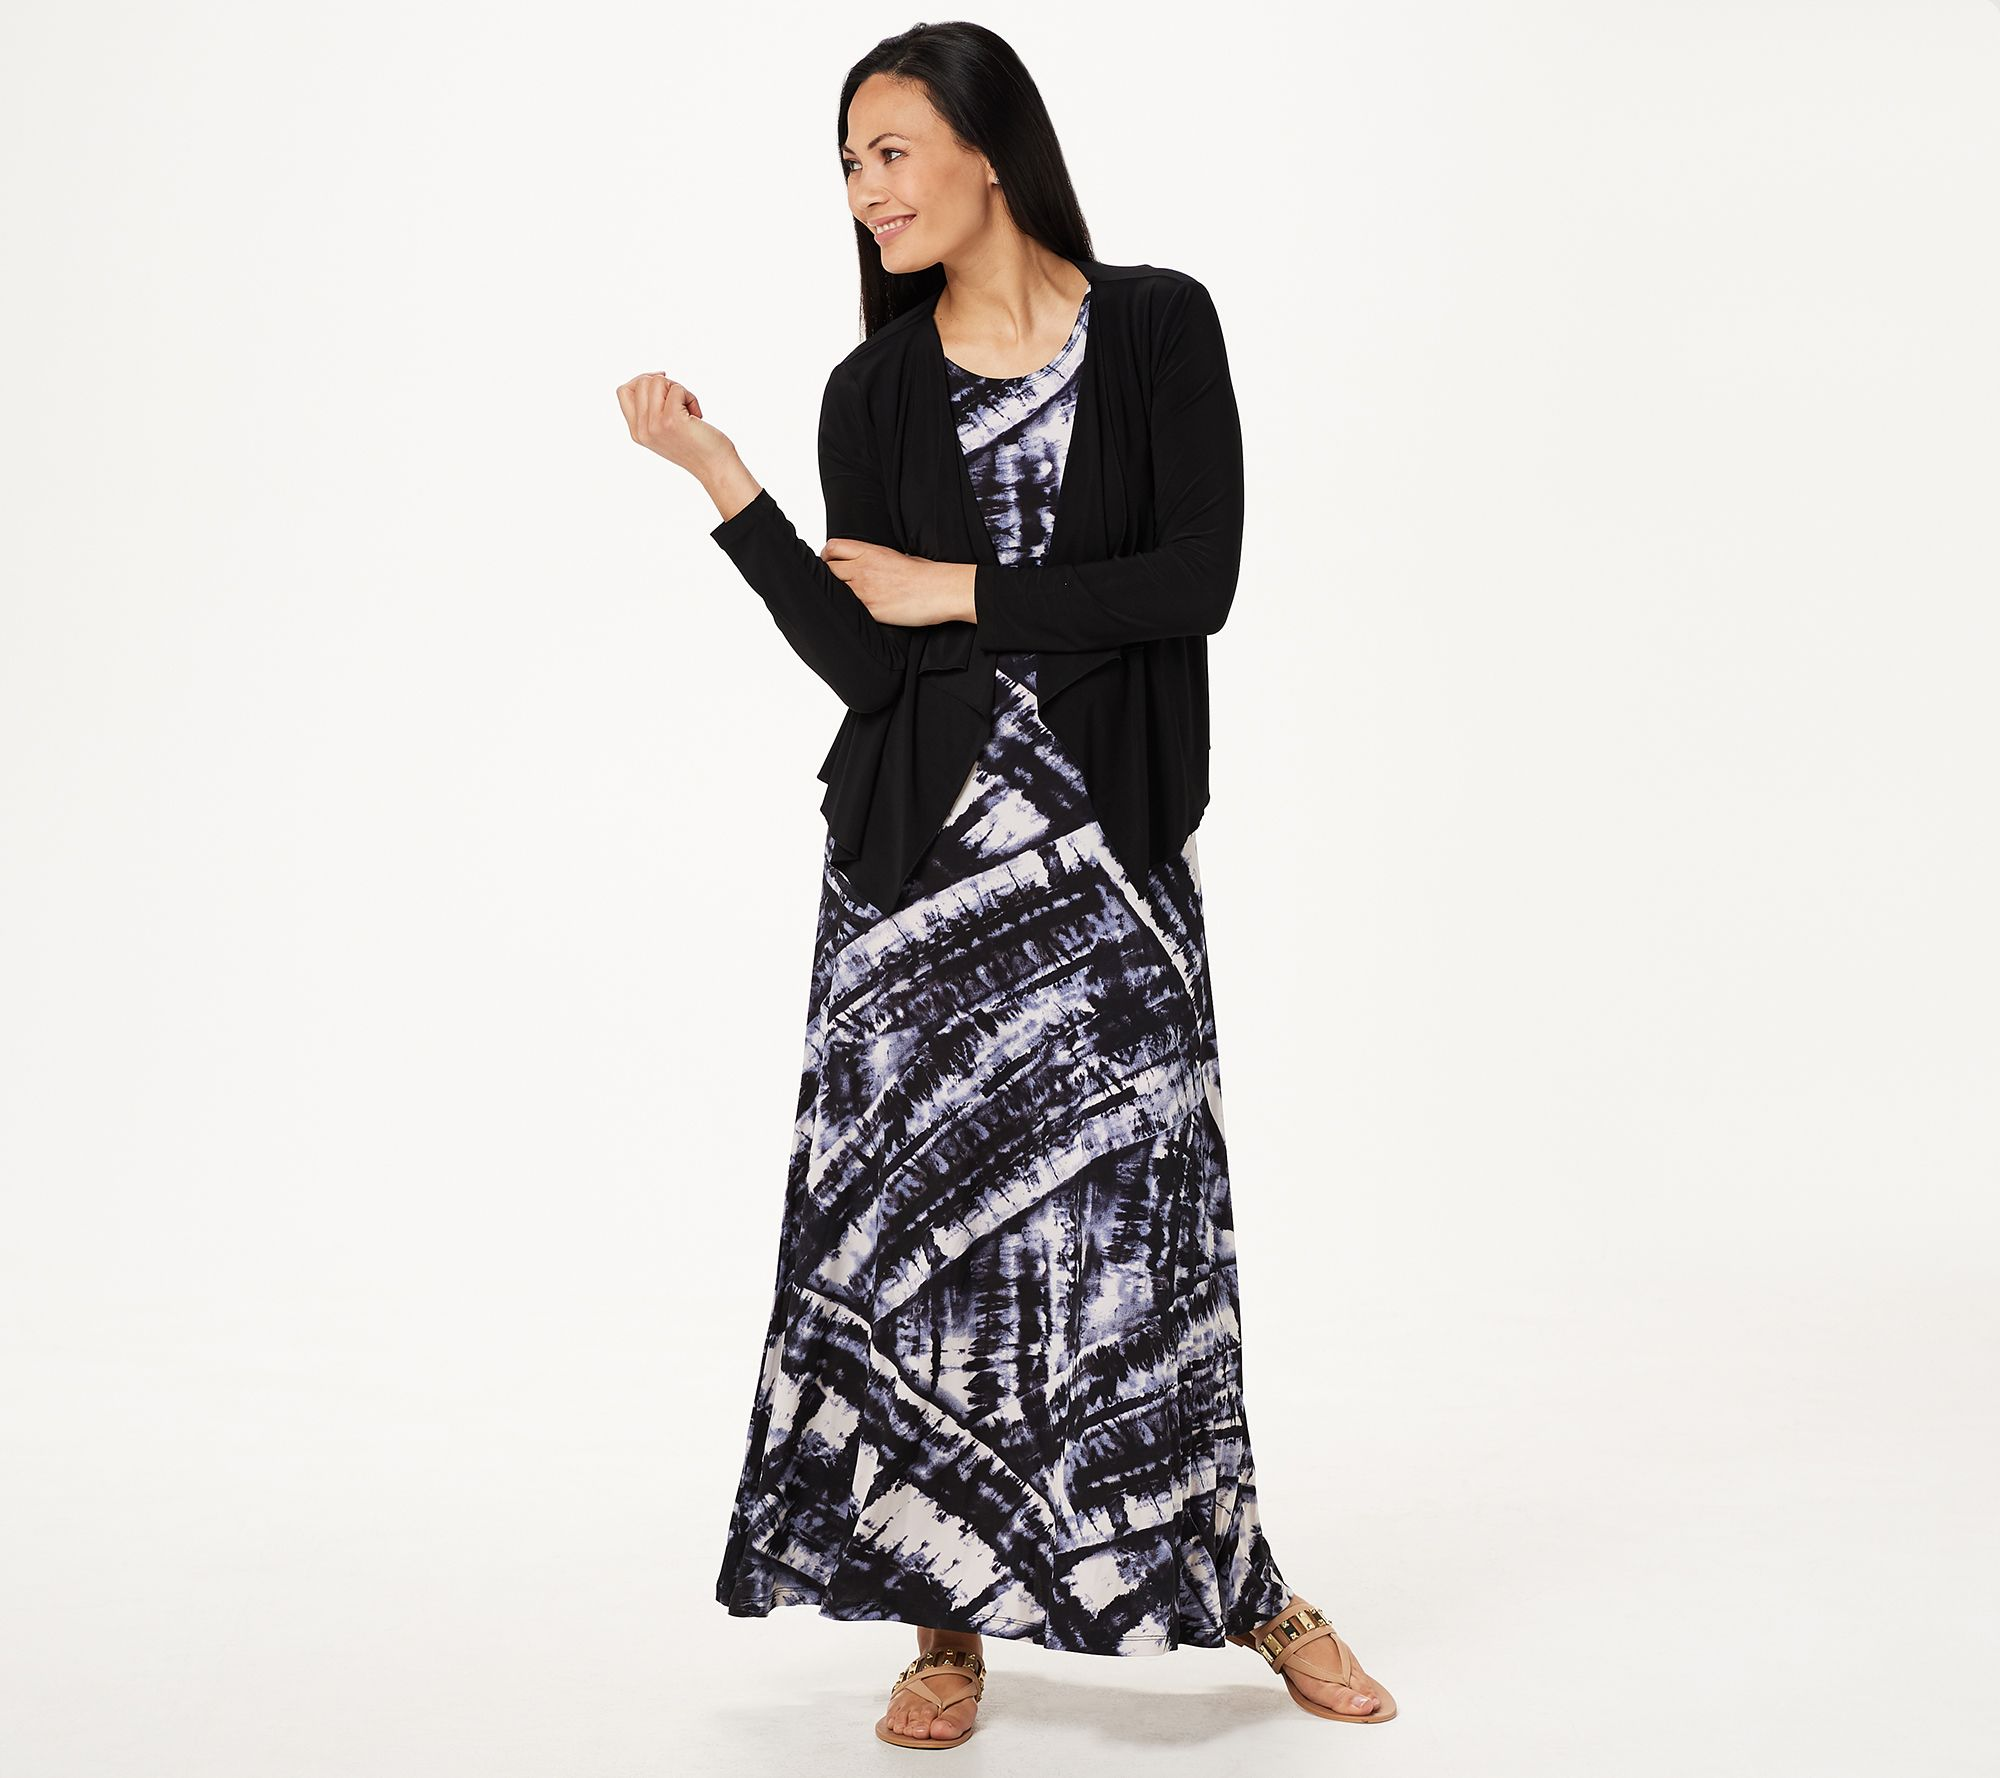 7261bc185a4f Attitudes by Renee Regular Printed Maxi Dress with Cardigan - Page 1 — QVC. com